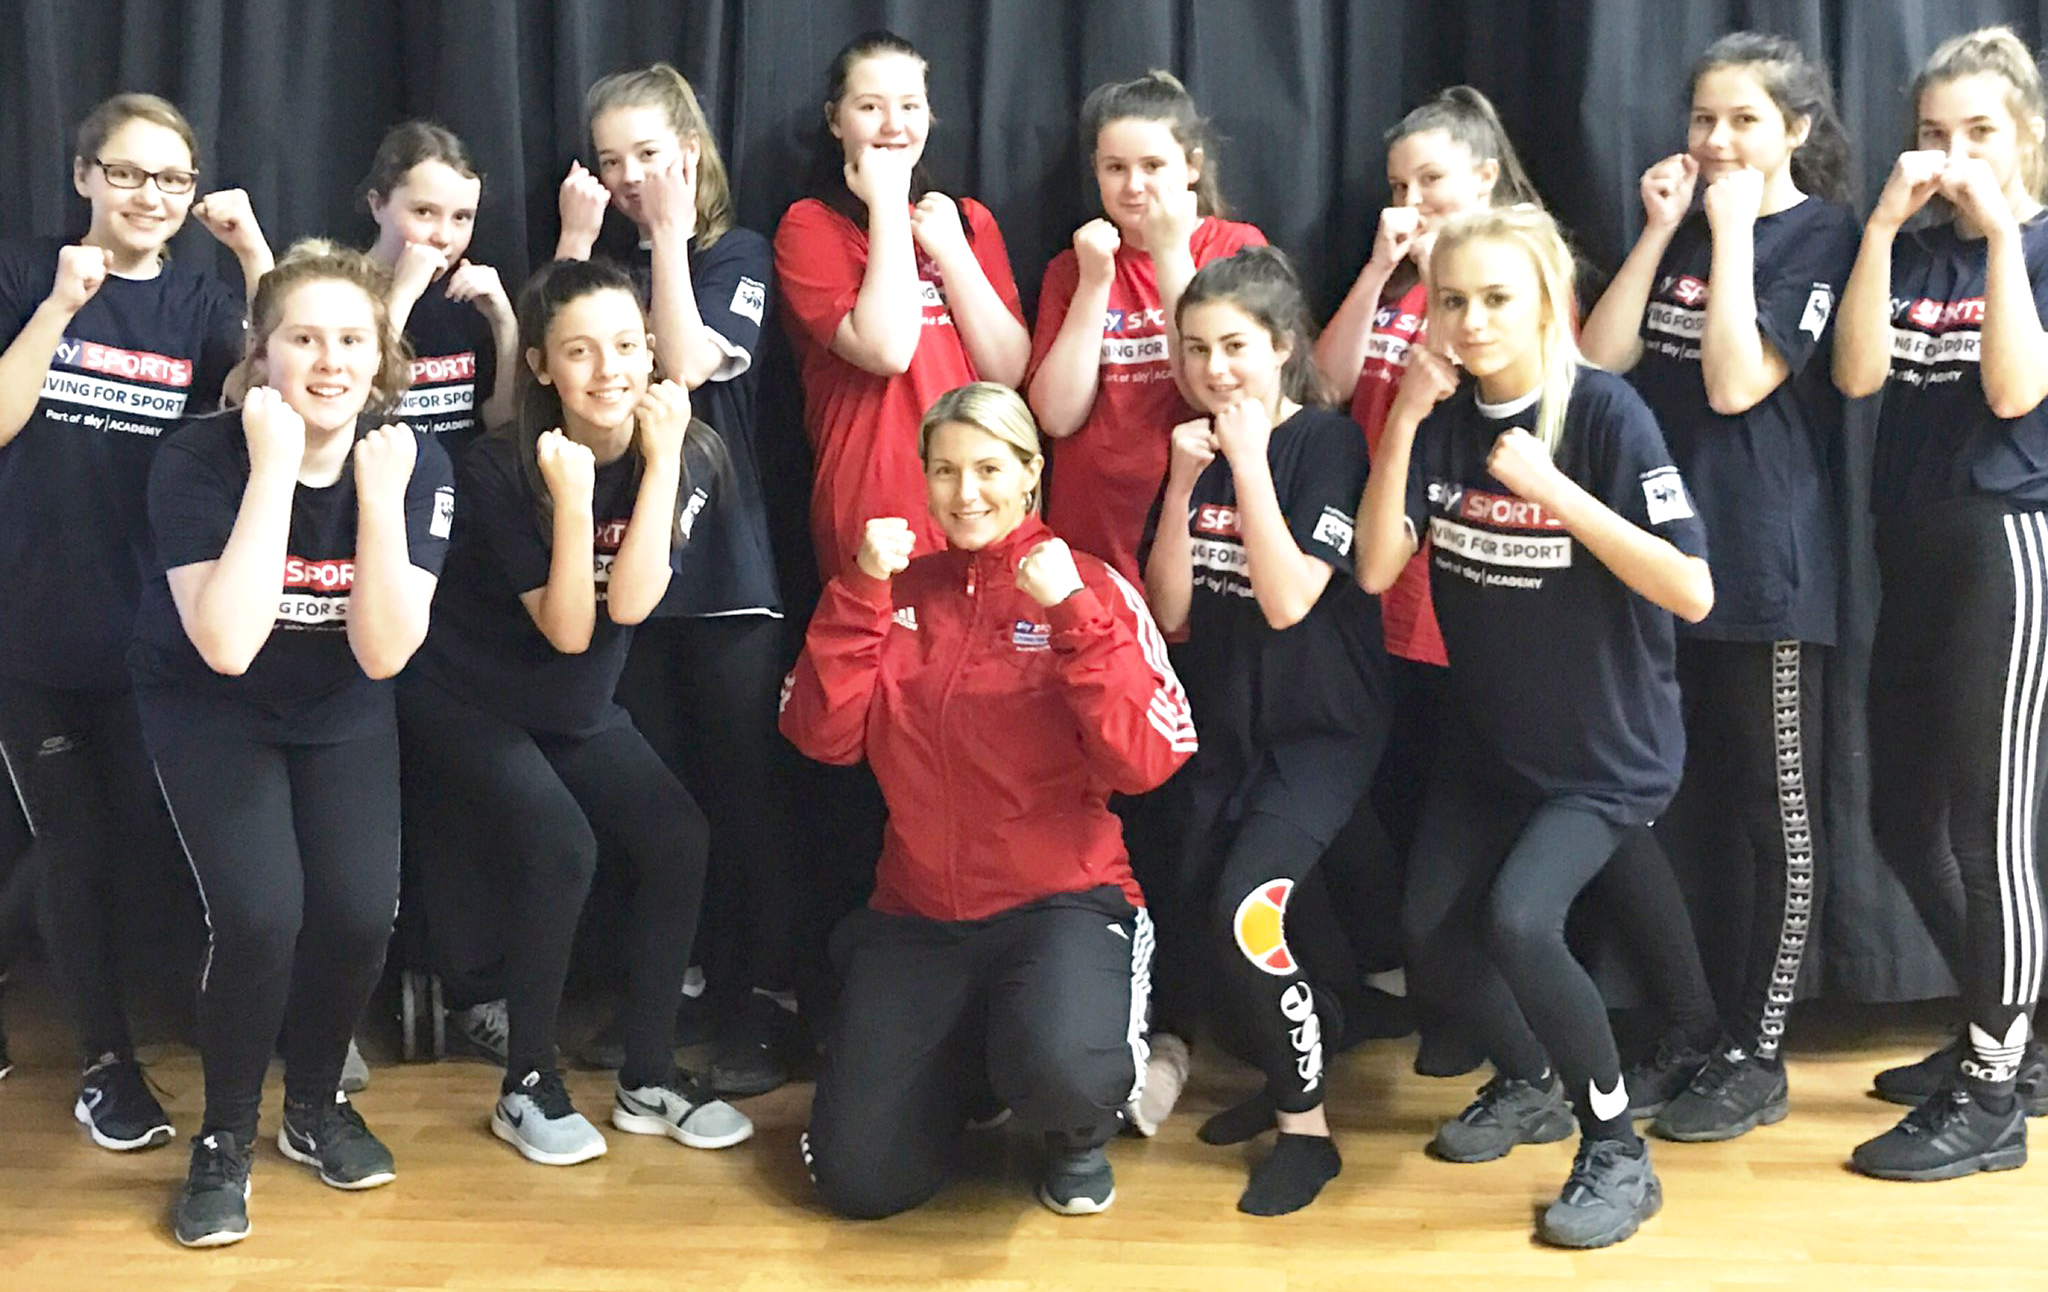 Woodham Studnets Team up With G.B. Coach